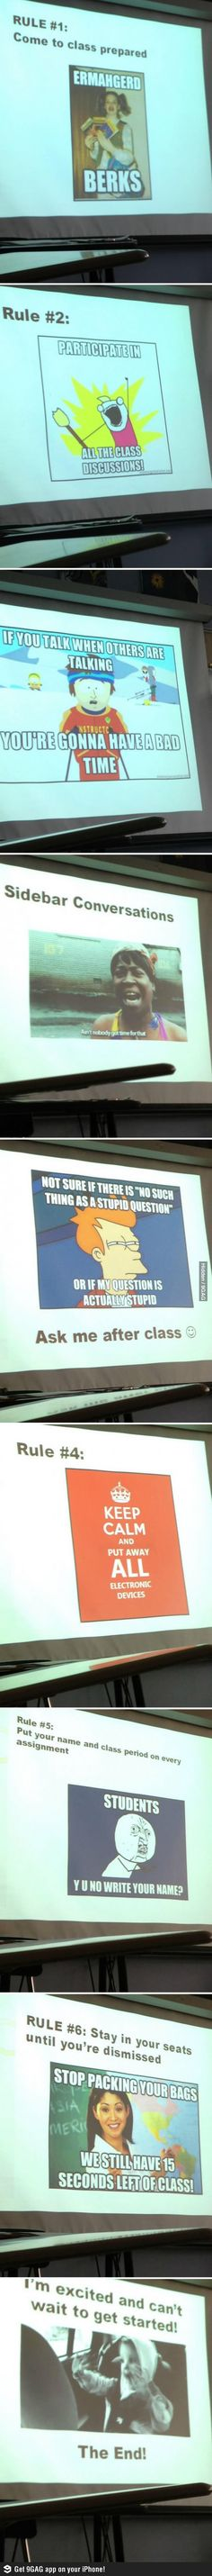 Best class expectations lecture ever.